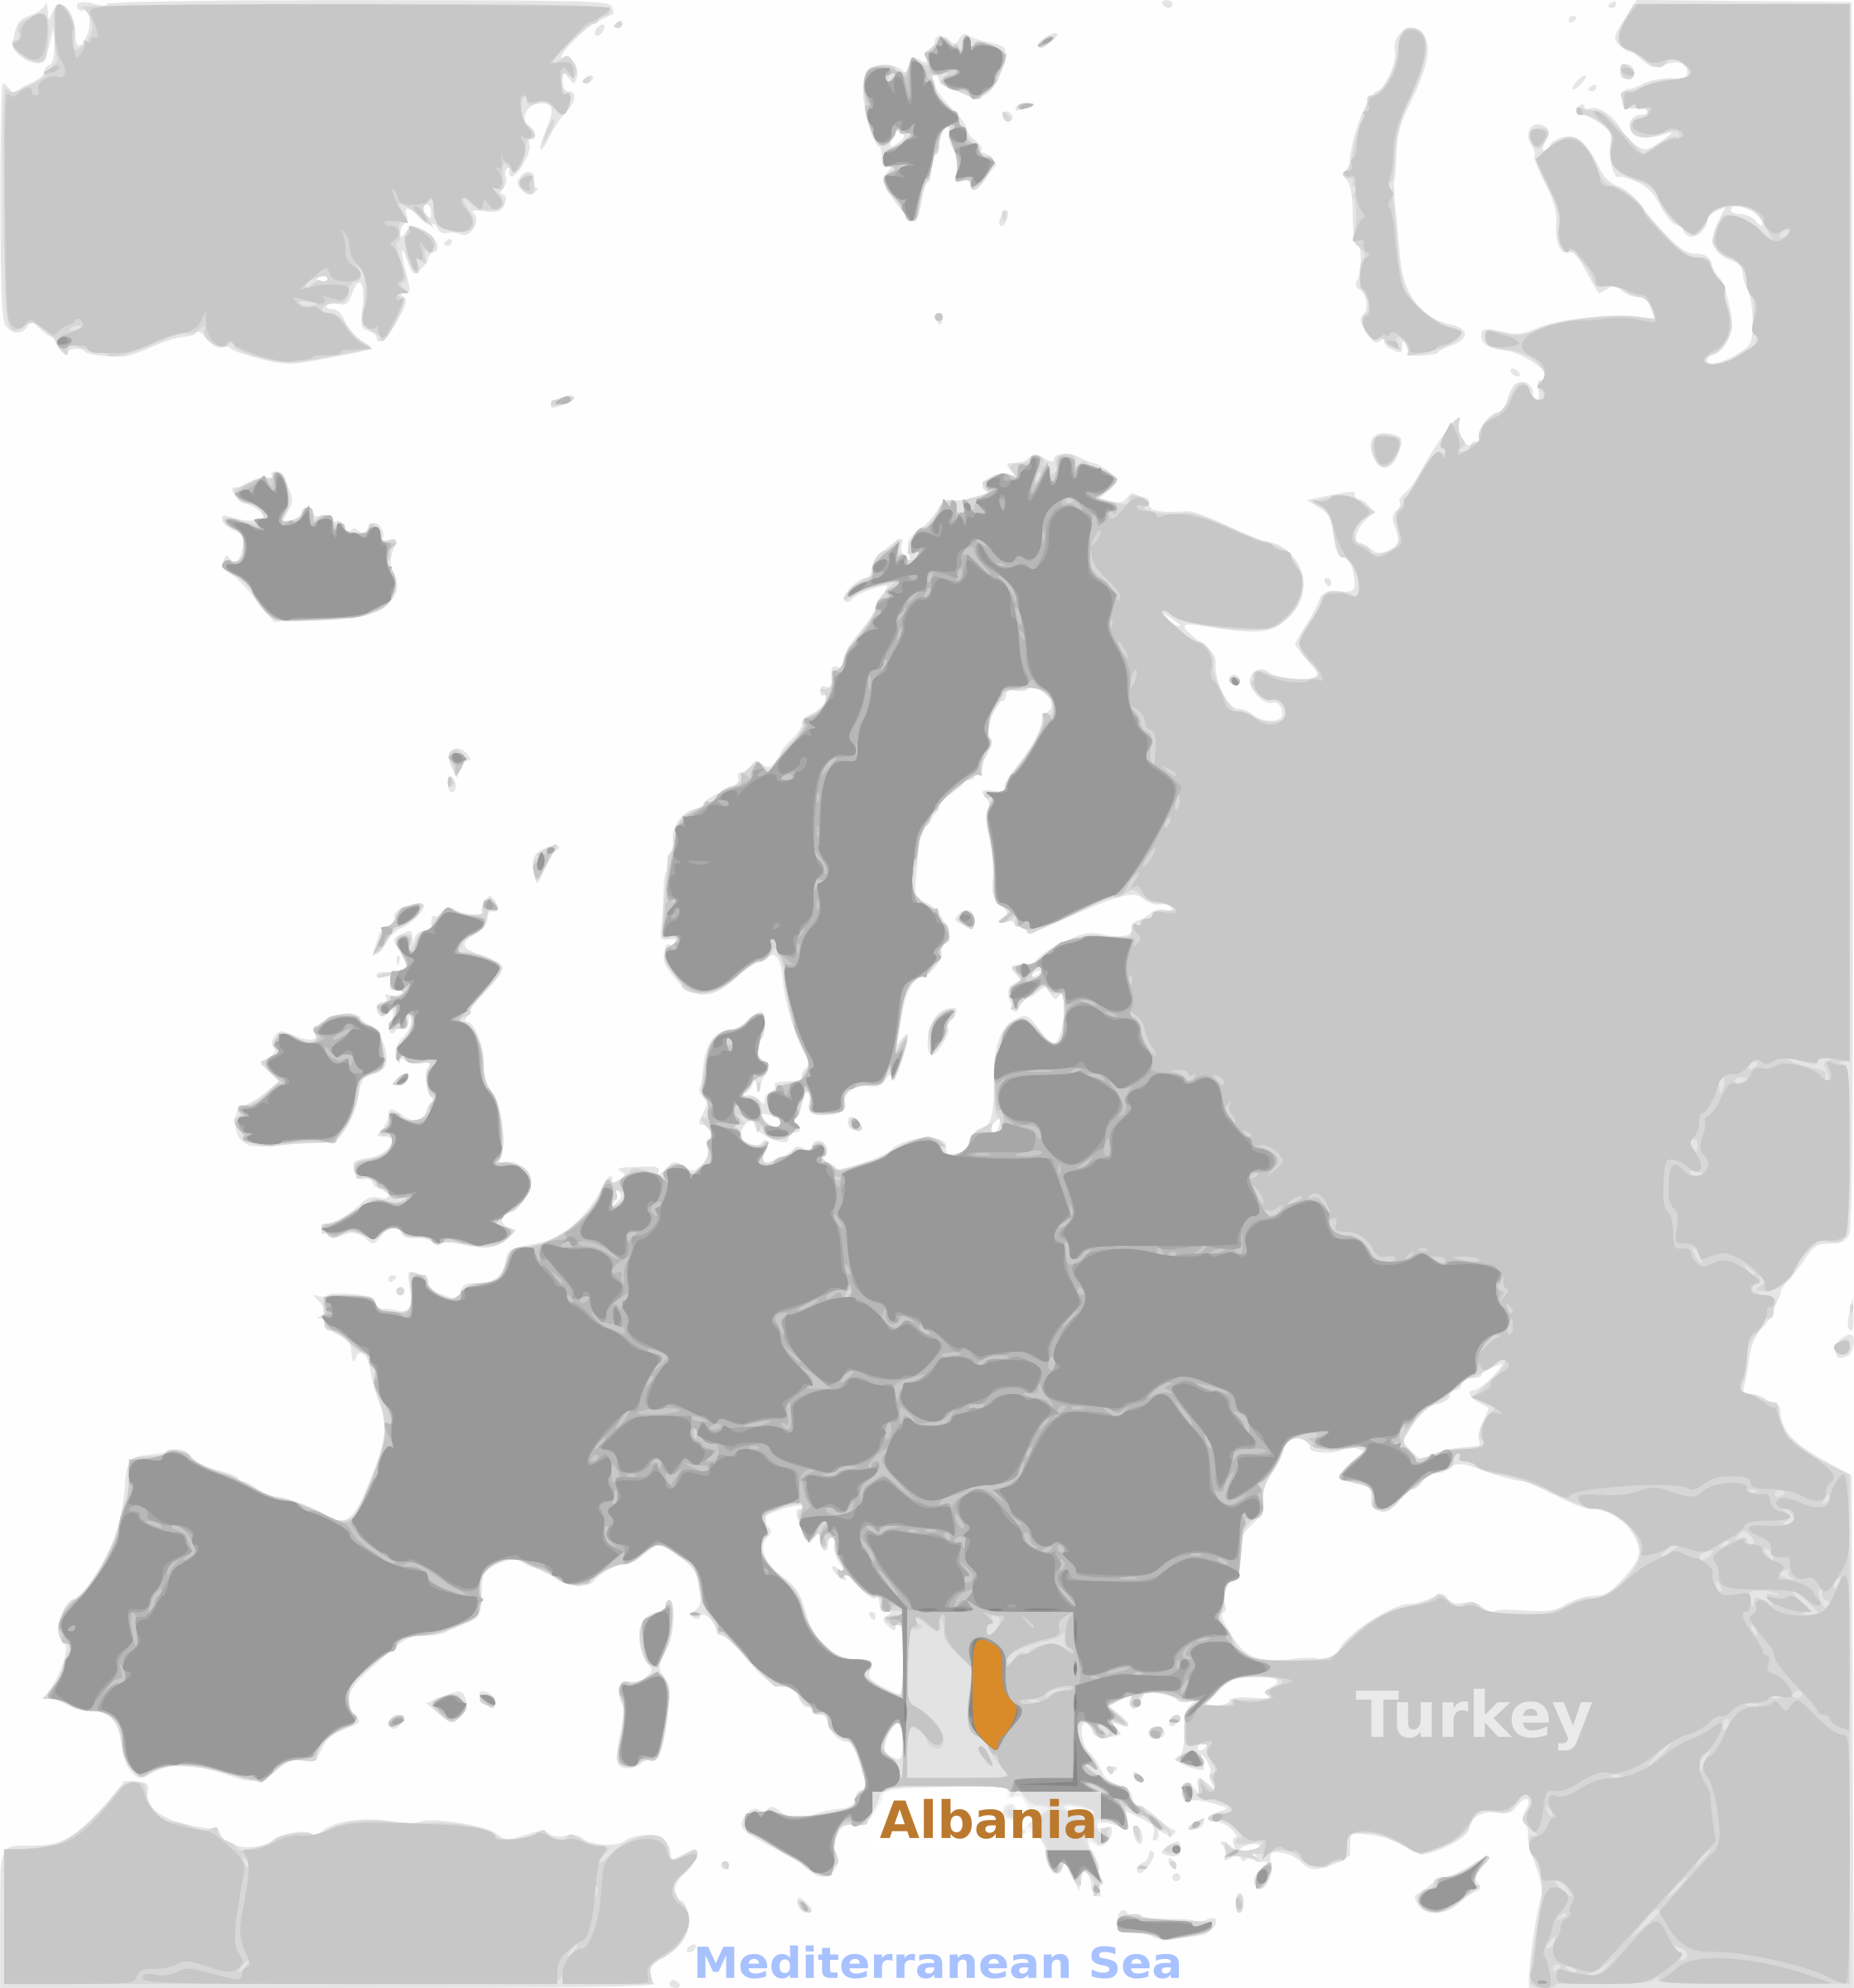 Albania location label by wpclipart